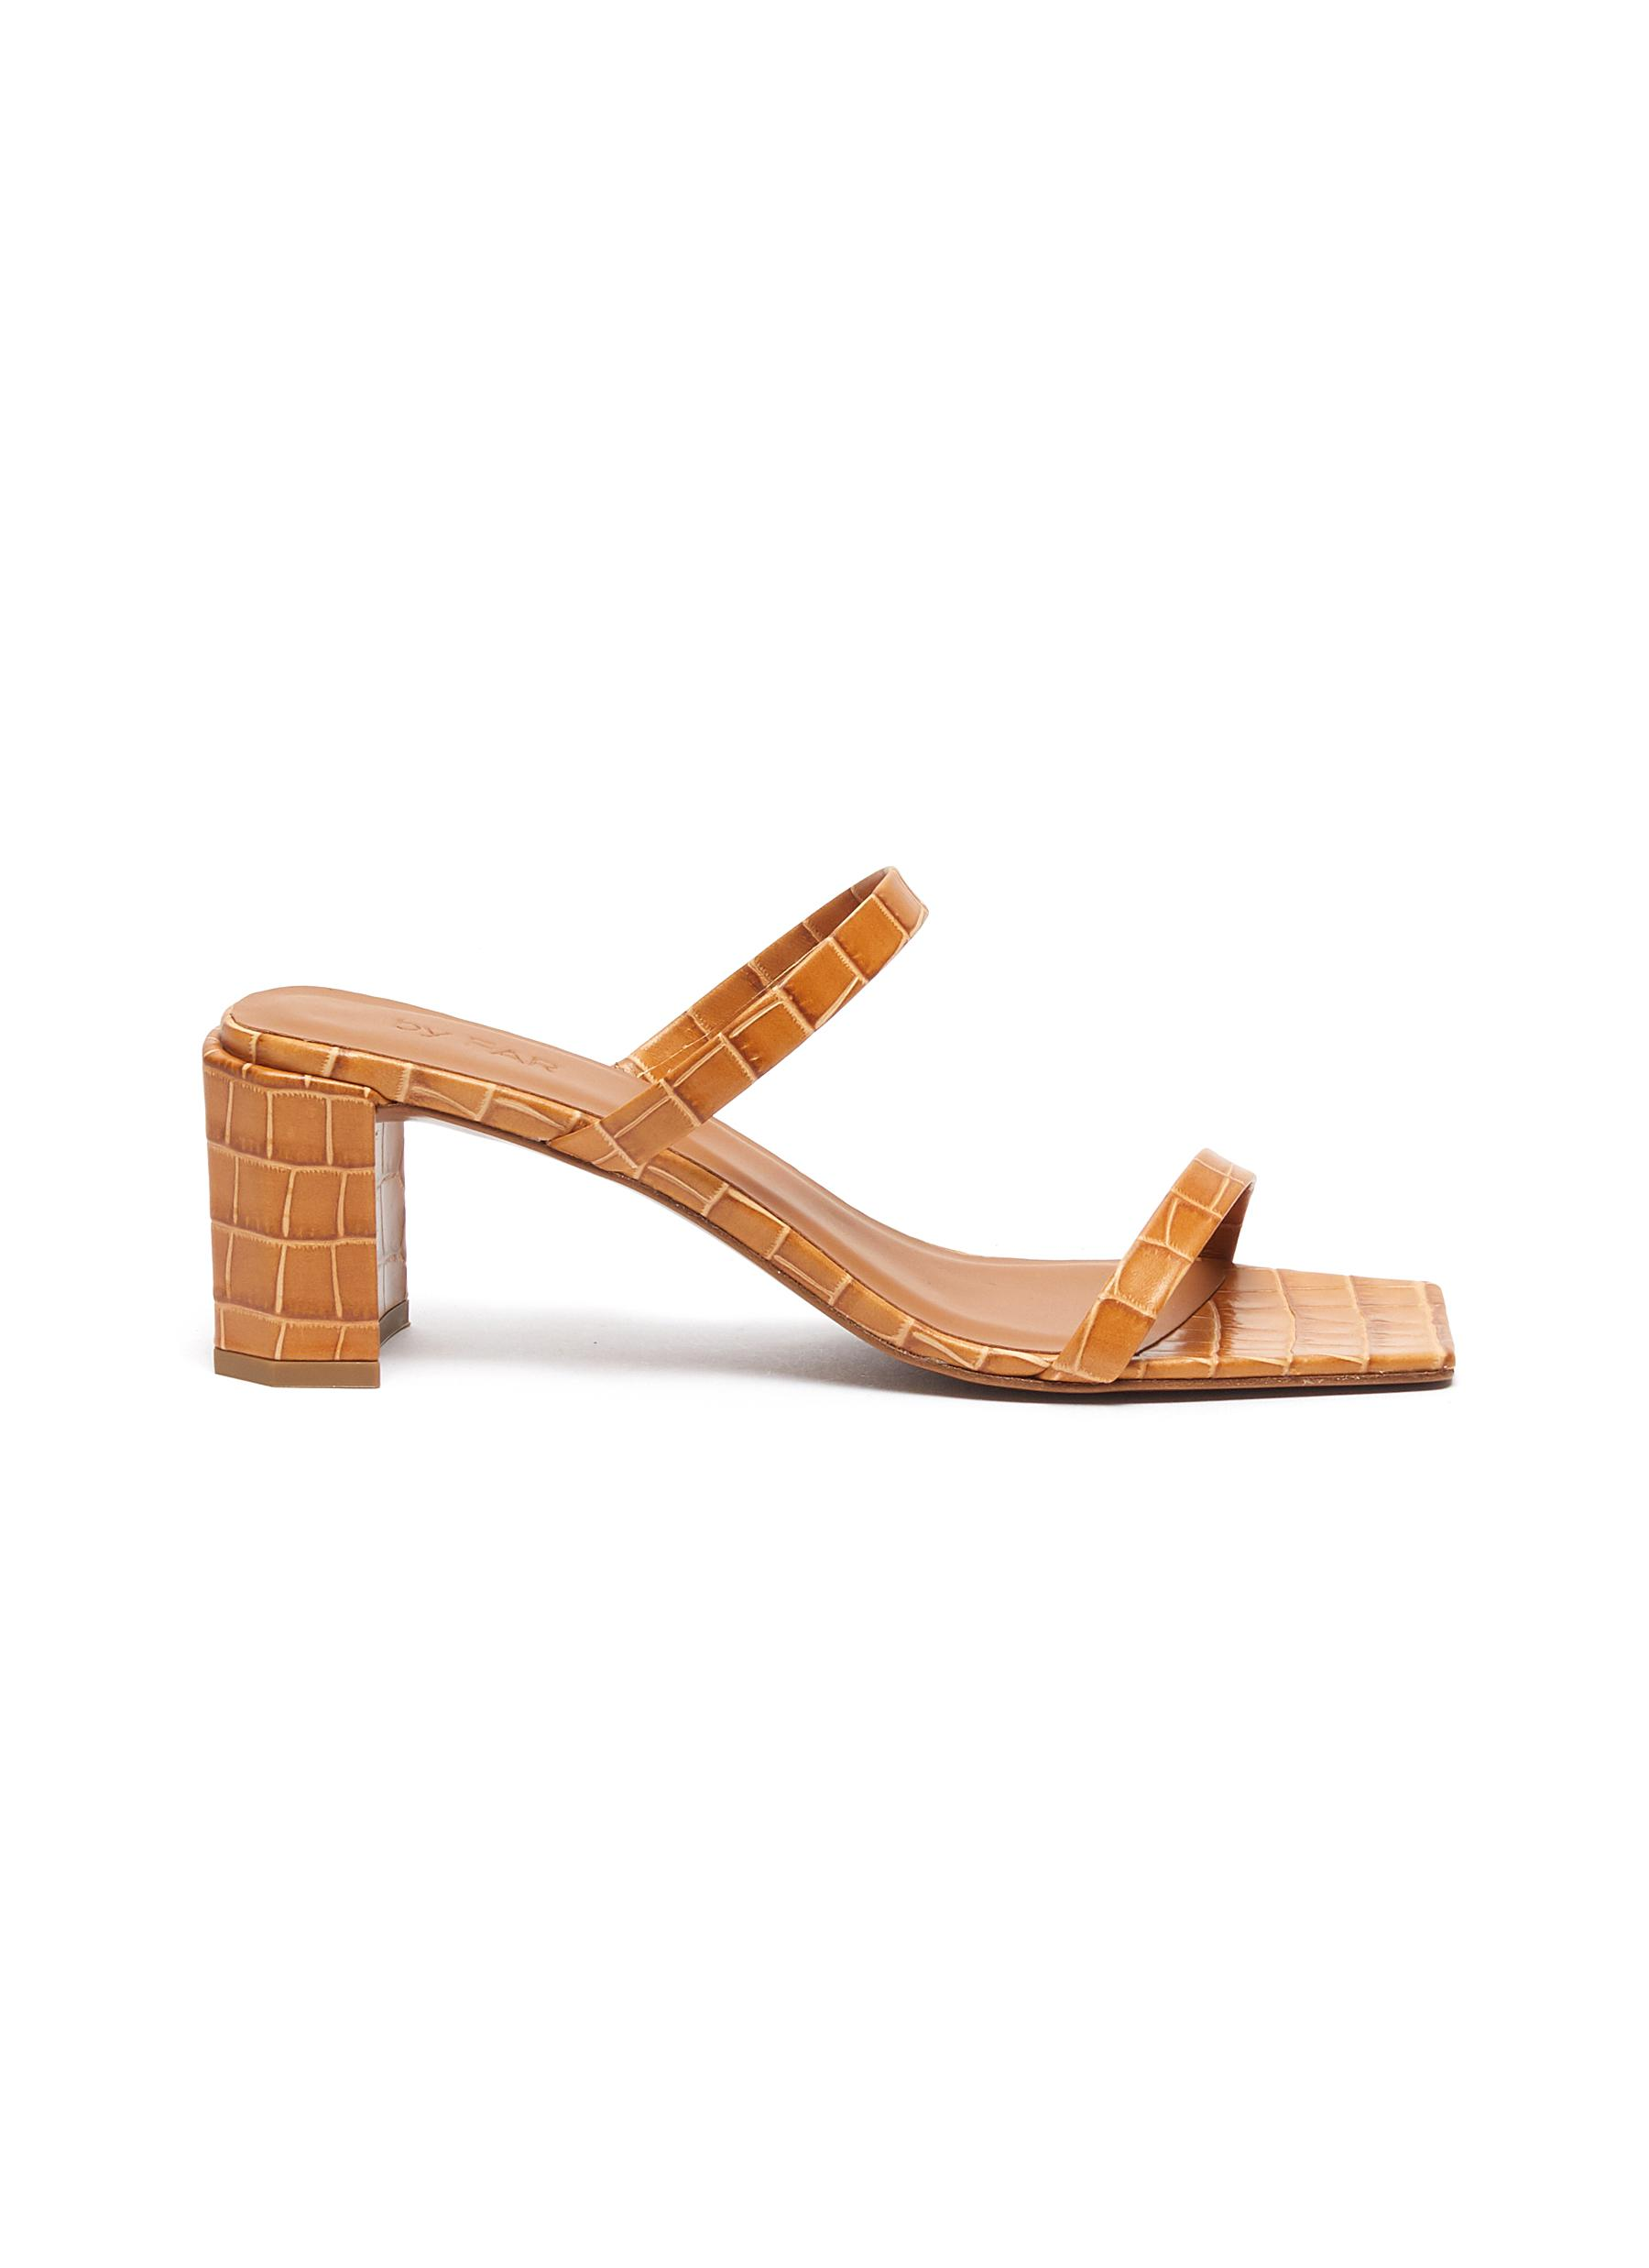 Tanya croc embossed leather sandals by By Far